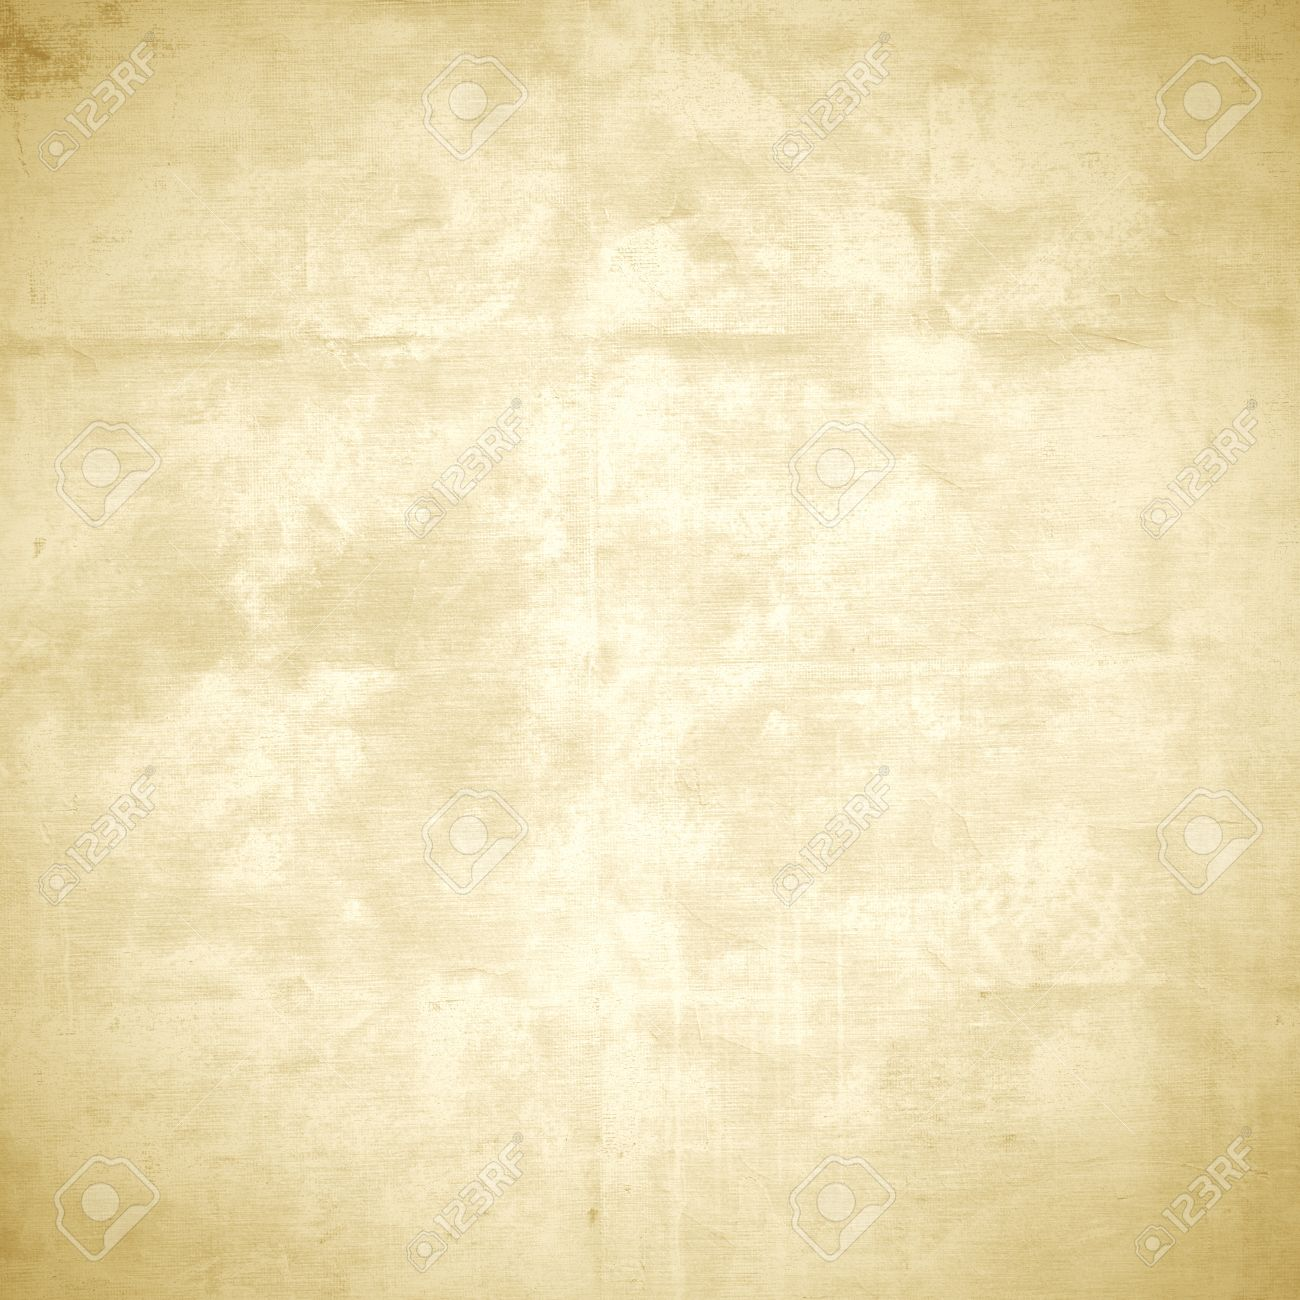 Old Parchment Paper Texture Background Stock Photo, Picture And ...